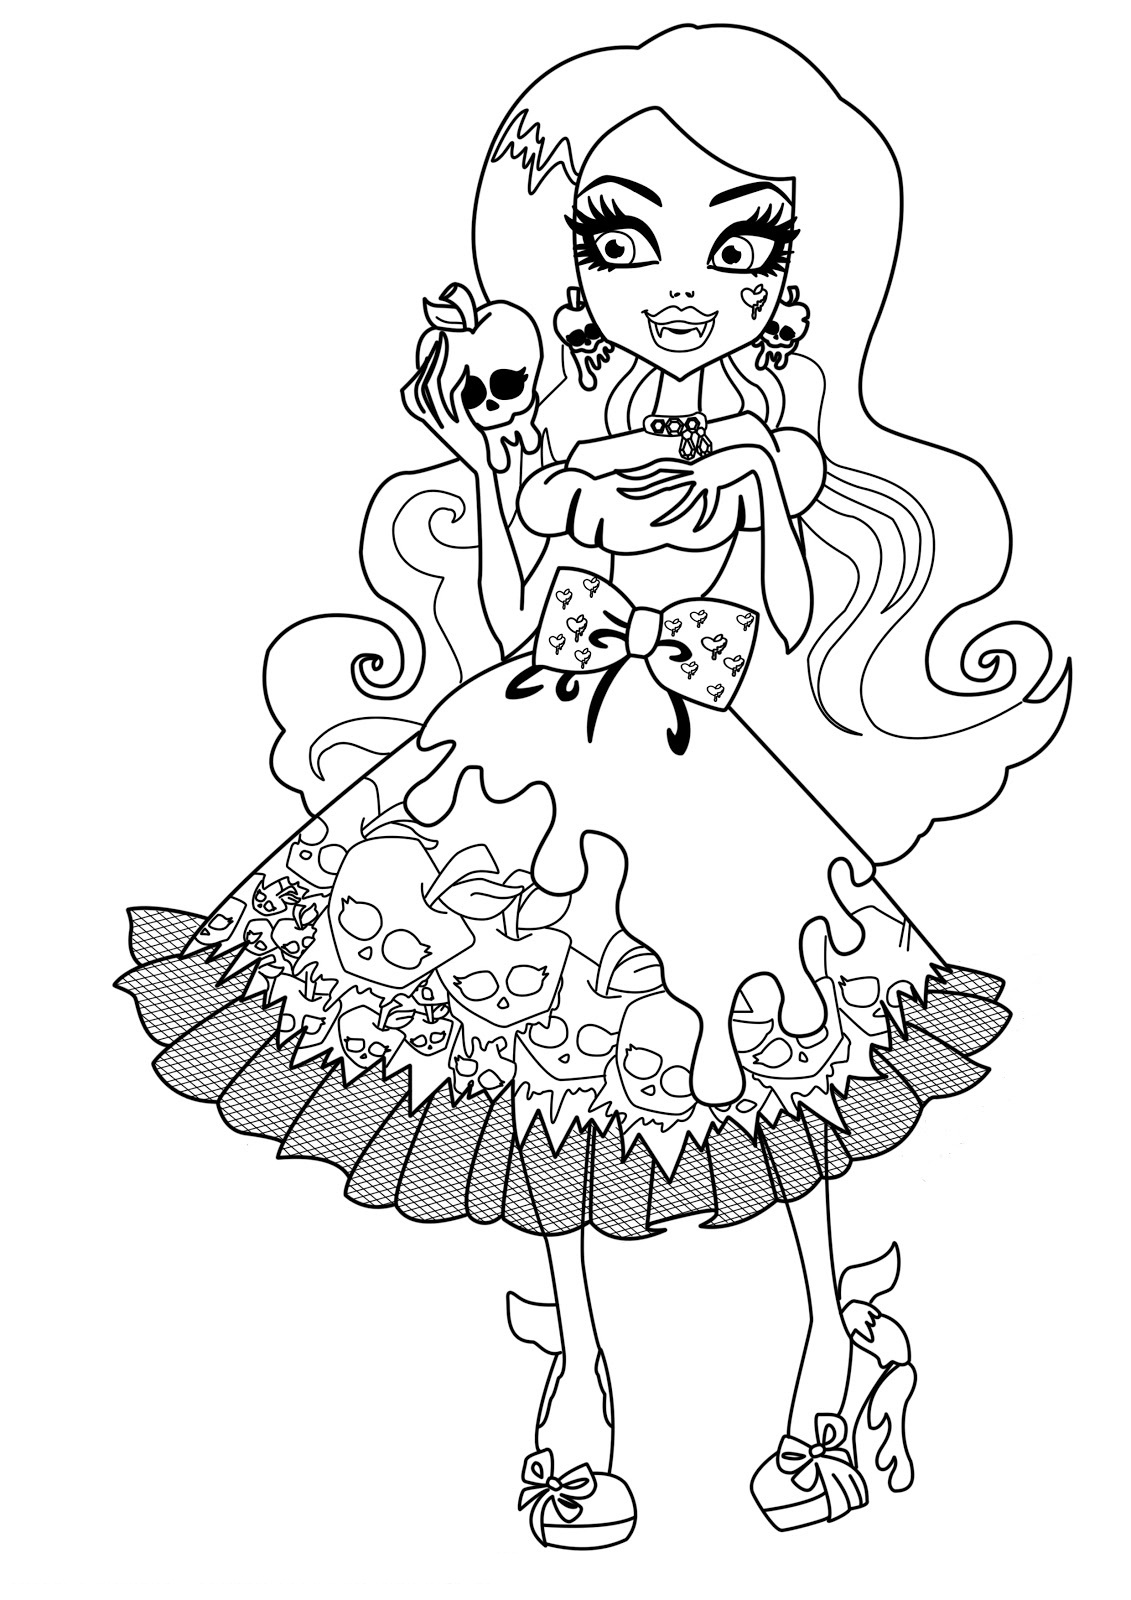 Image Result For Baby Monster High Coloring Pages To Print For Free